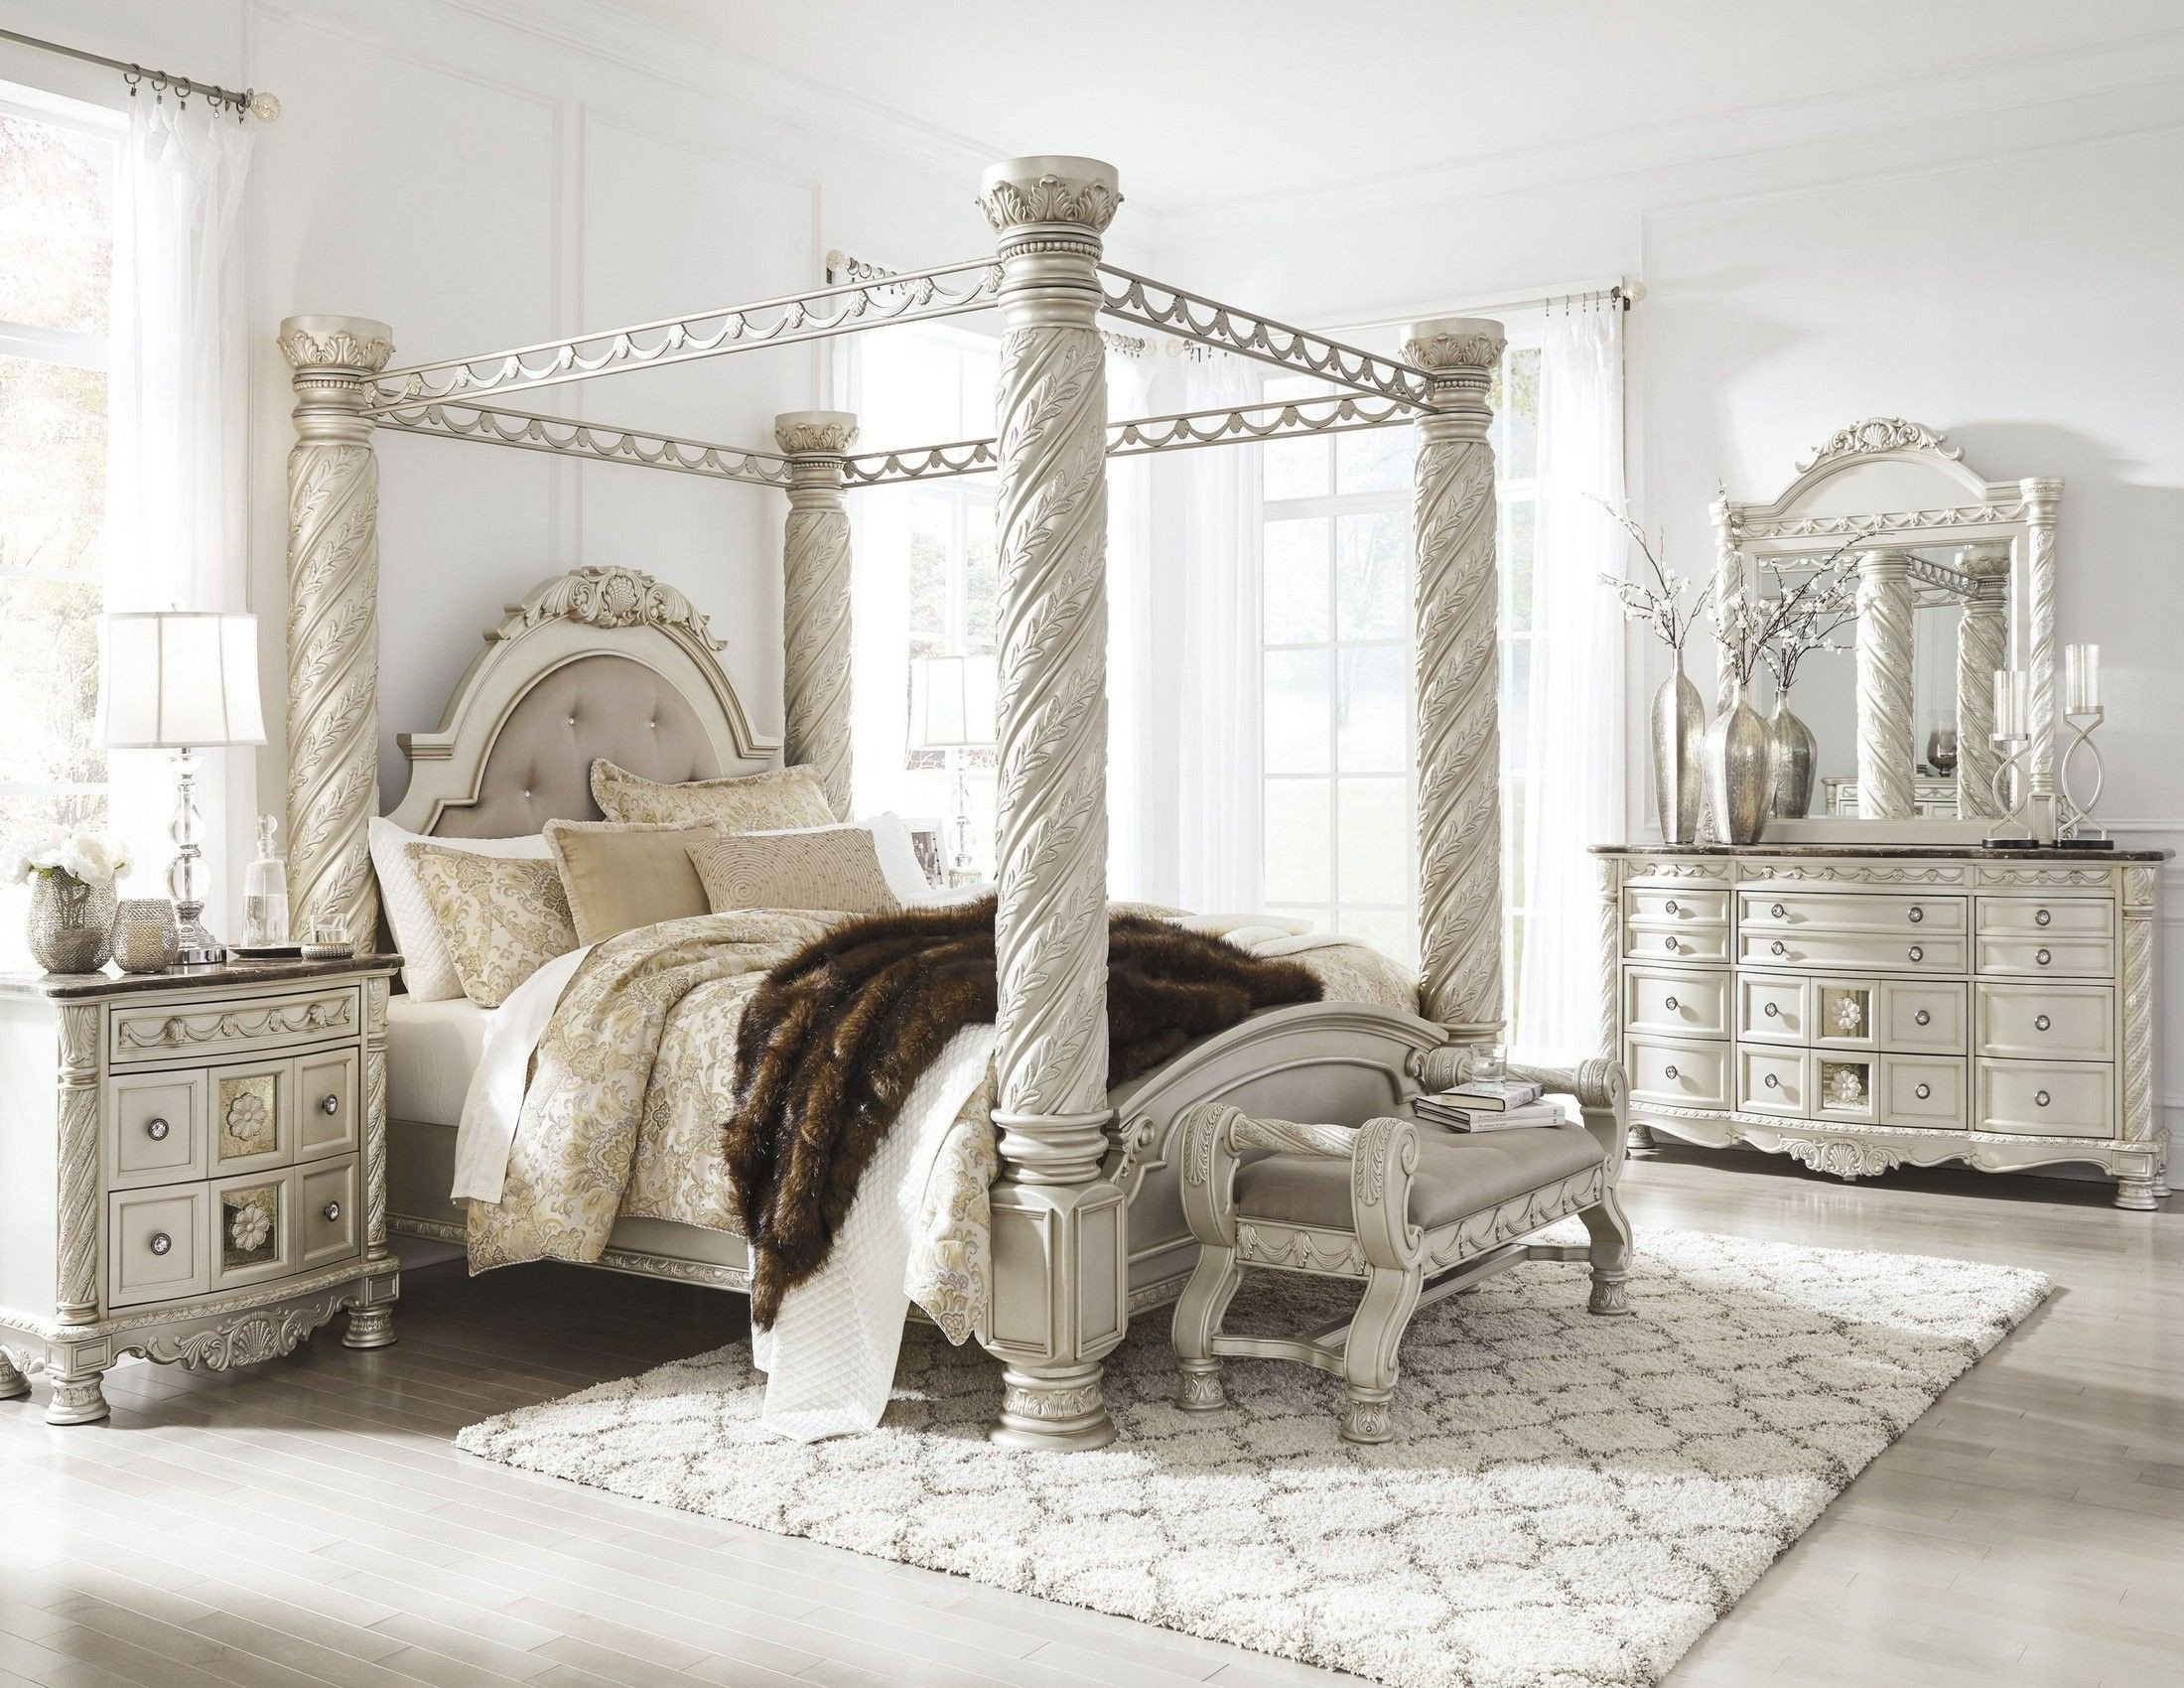 Monte Carlo Bedroom Set Inspirational Cassimore north Shore Pearl Silver Upholstered Poster Canopy